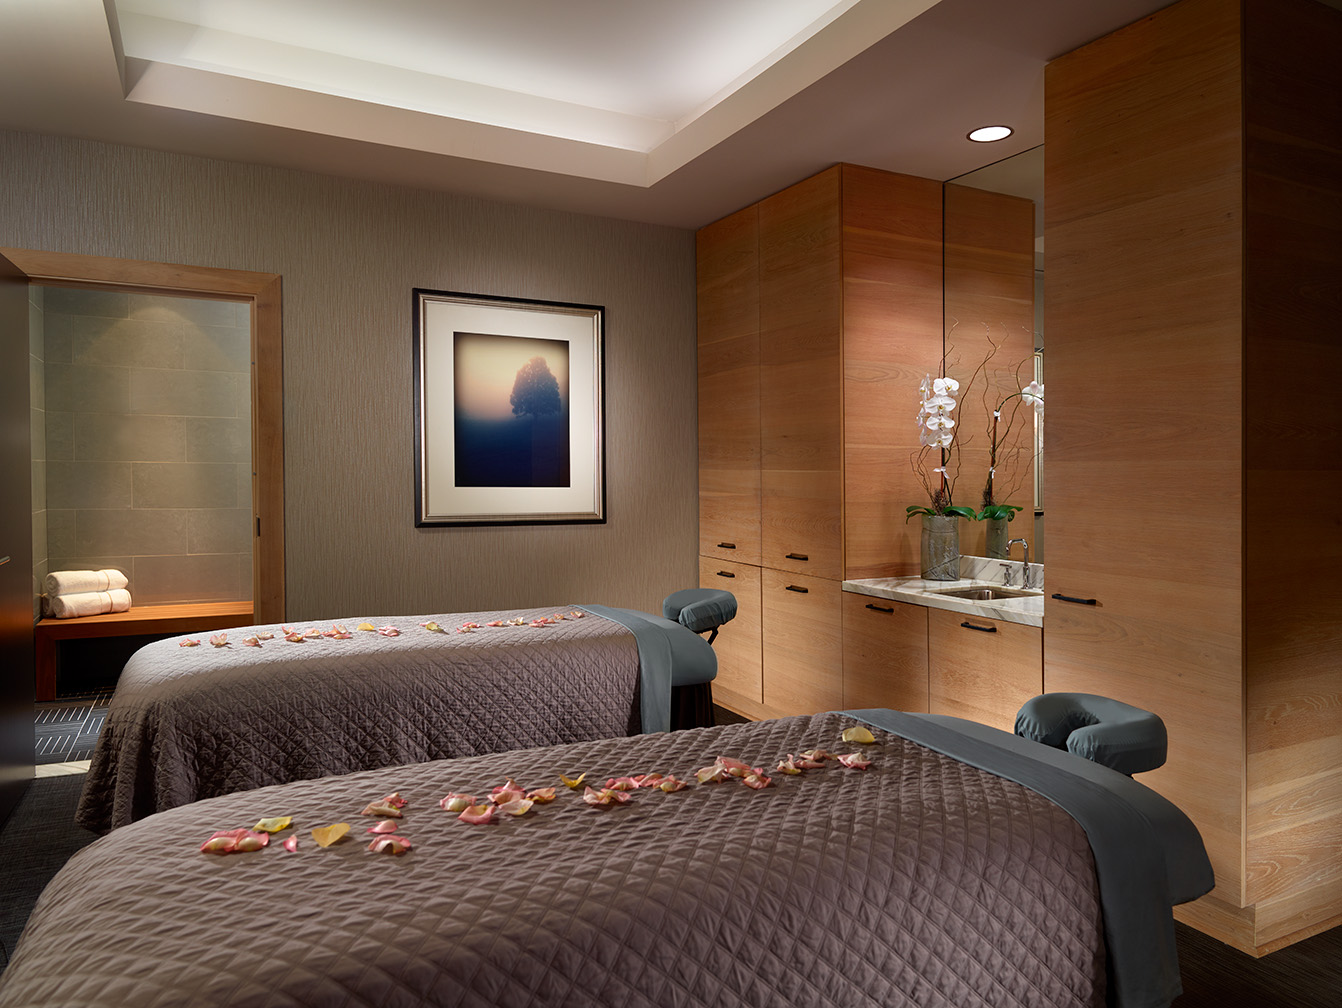 Couple's treatment room for massages at the Mokara spa in the Omni Hotel in Nashville, TN.